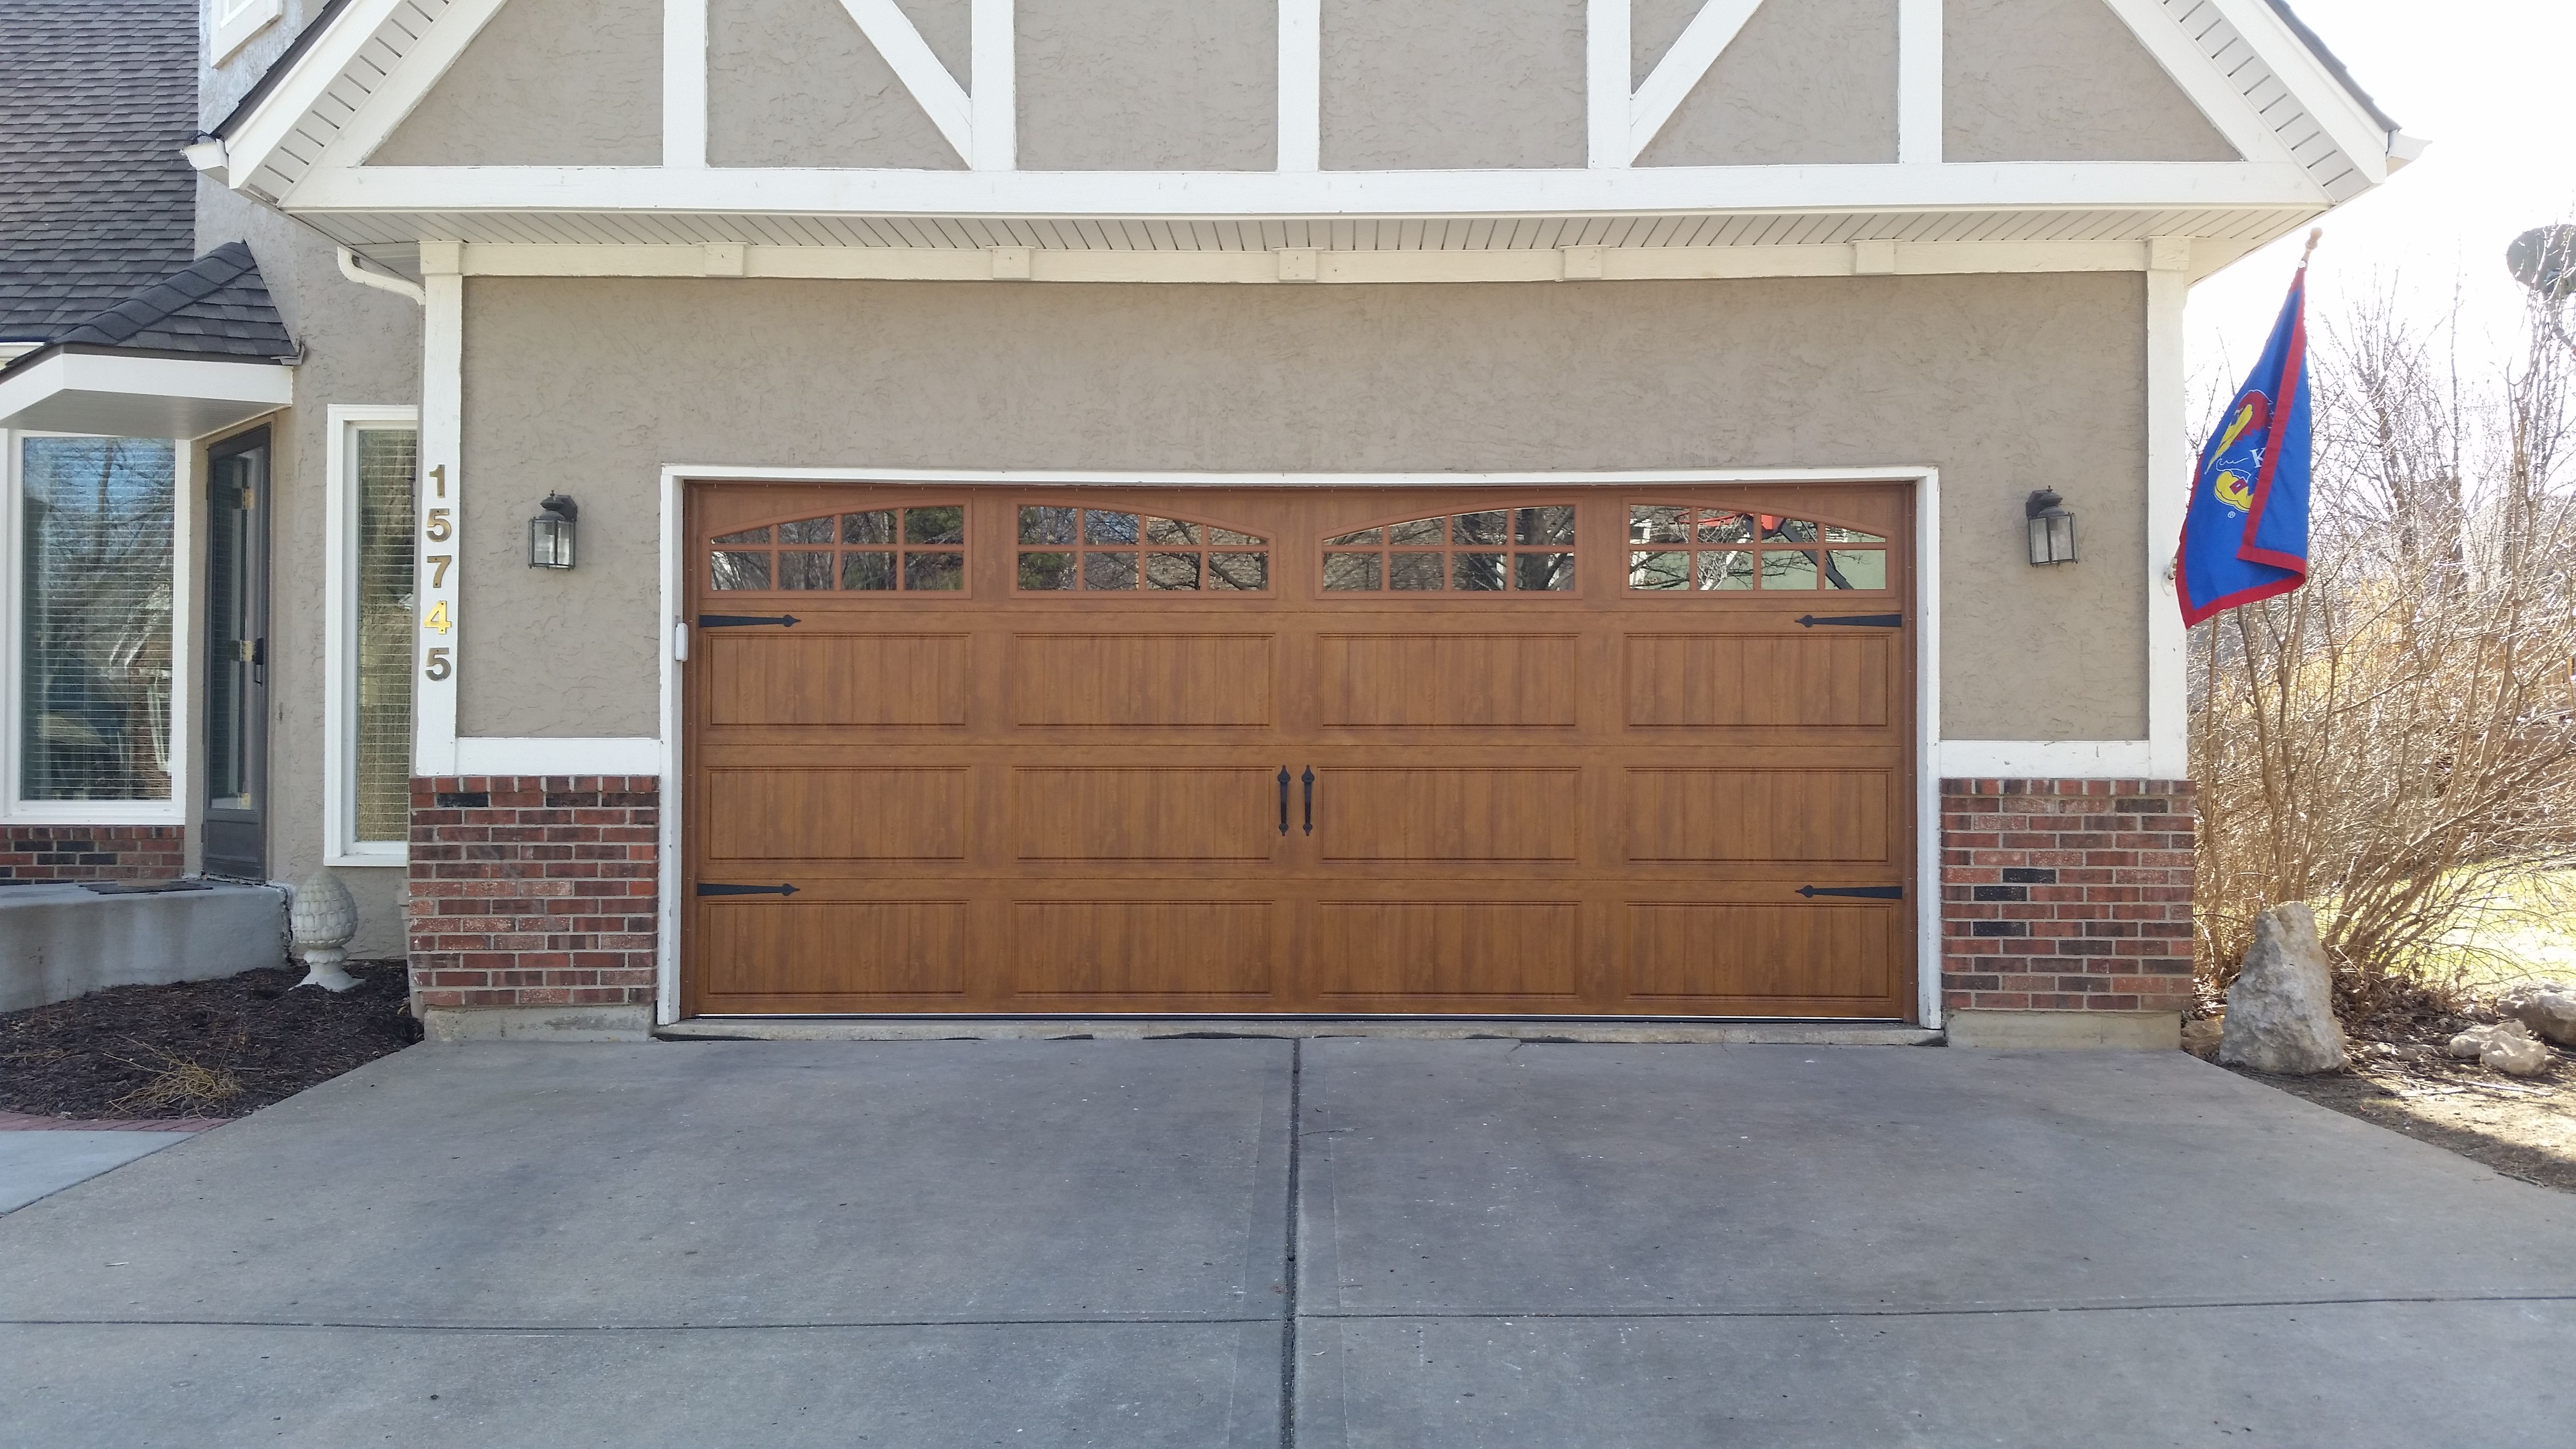 Classica northampton garage door white 9 x 8 no windows - Gallery Collection Clopay Garage Doors Carriage Style With Windows Double Ultragrain Finish Steel Insulated Garage Door